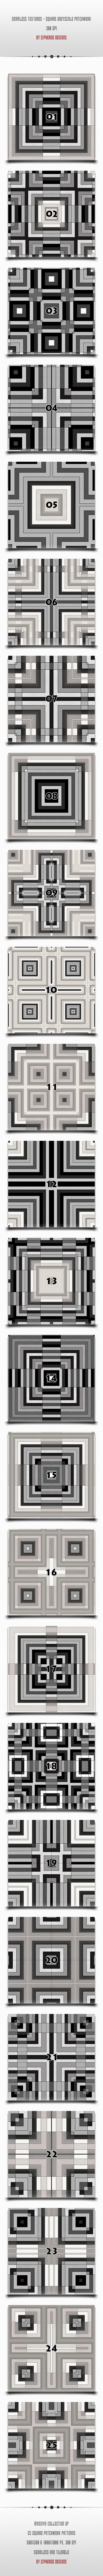 Seamless Textures - Square Greyscale Patchwork - Textures / Fills / Patterns Photoshop